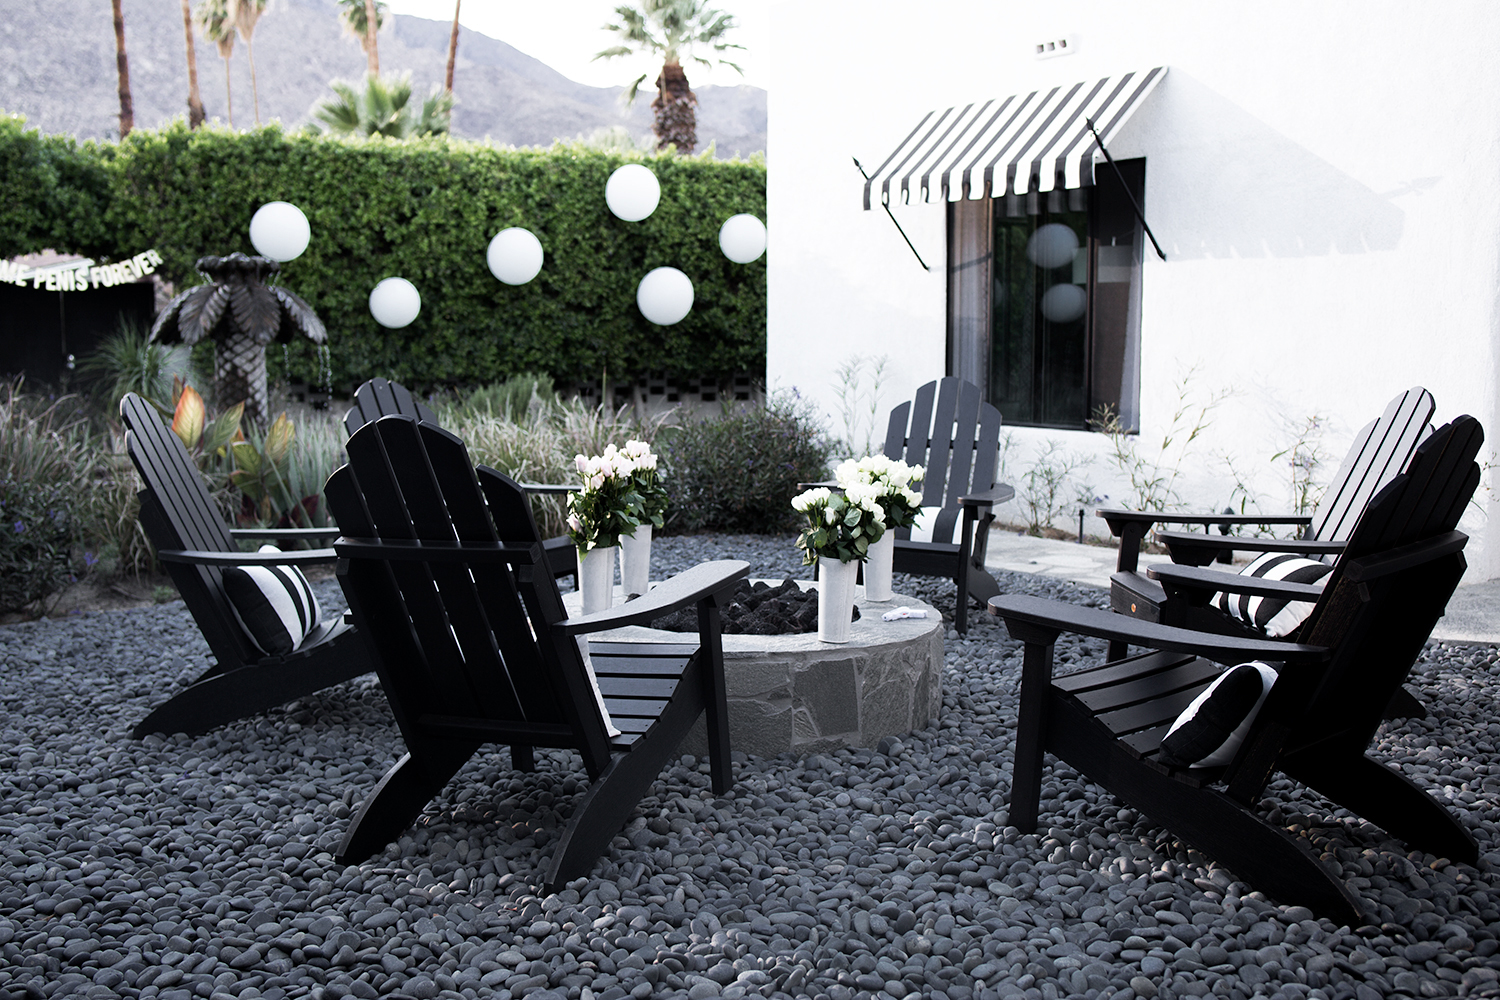 fashionlush, palm springs bachelorette party